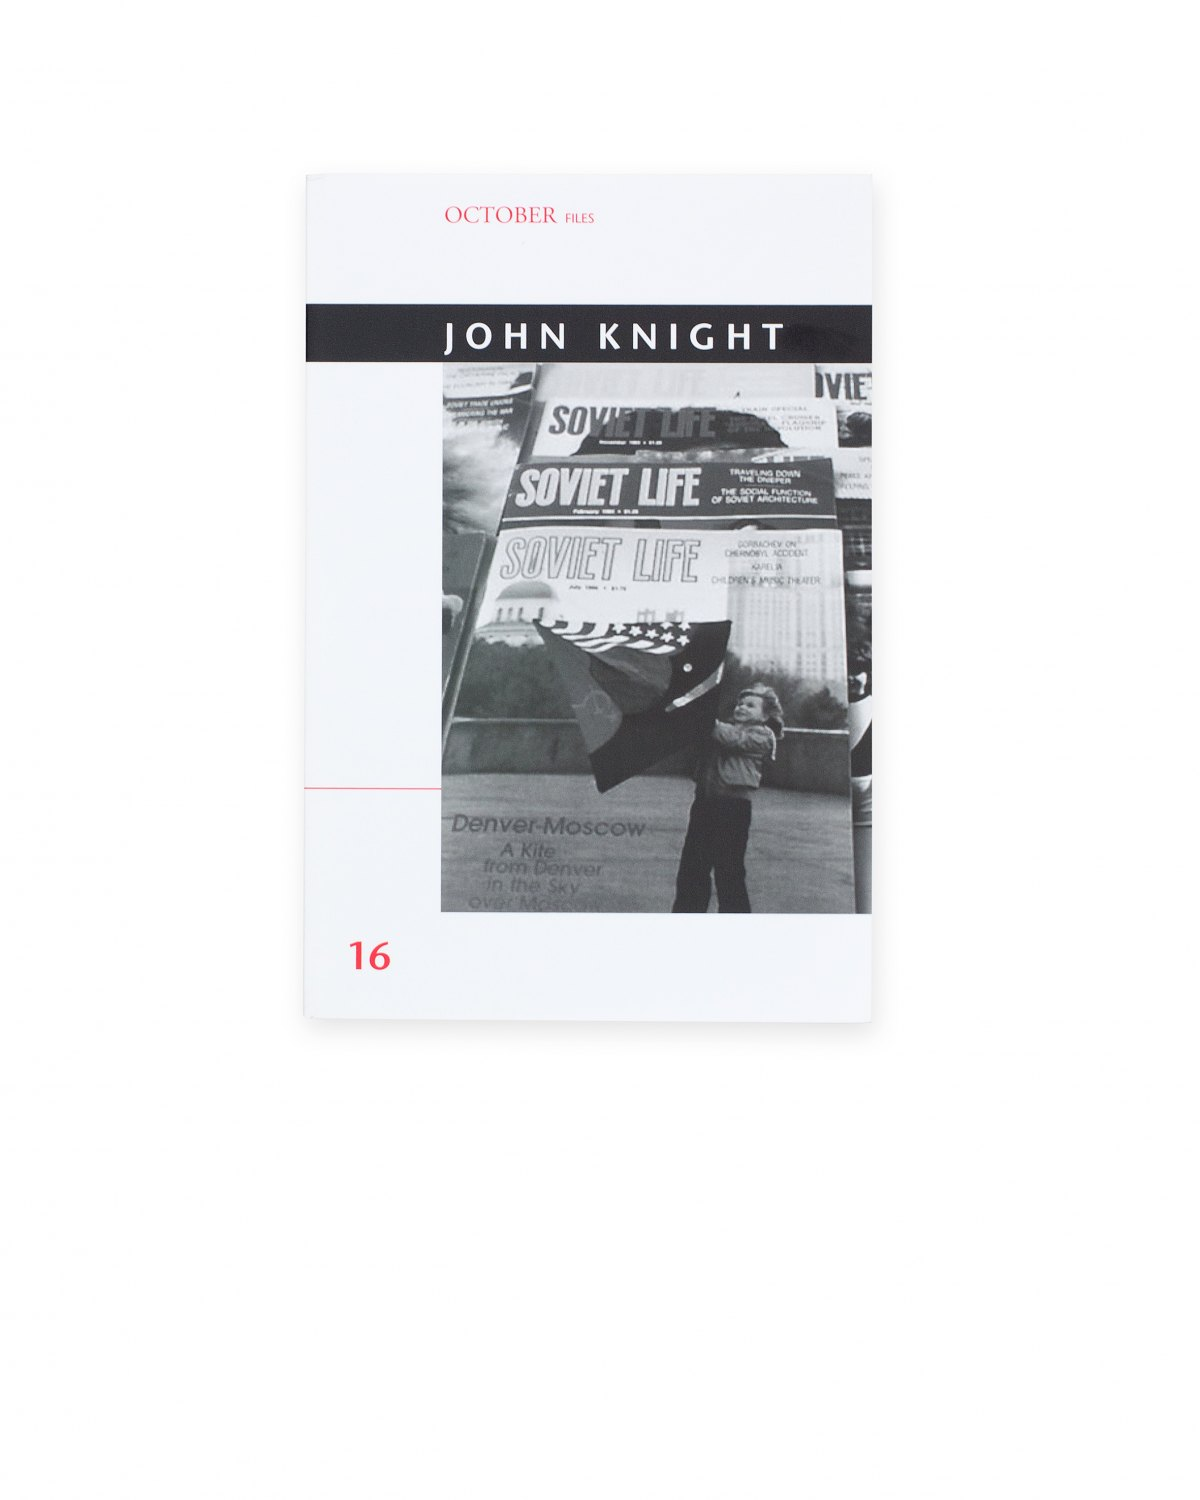 John Knight, October Files 16  ed. by André Rottmann, Cambridge 2014, 202 p.  ISBN 978-0-26252-568-8